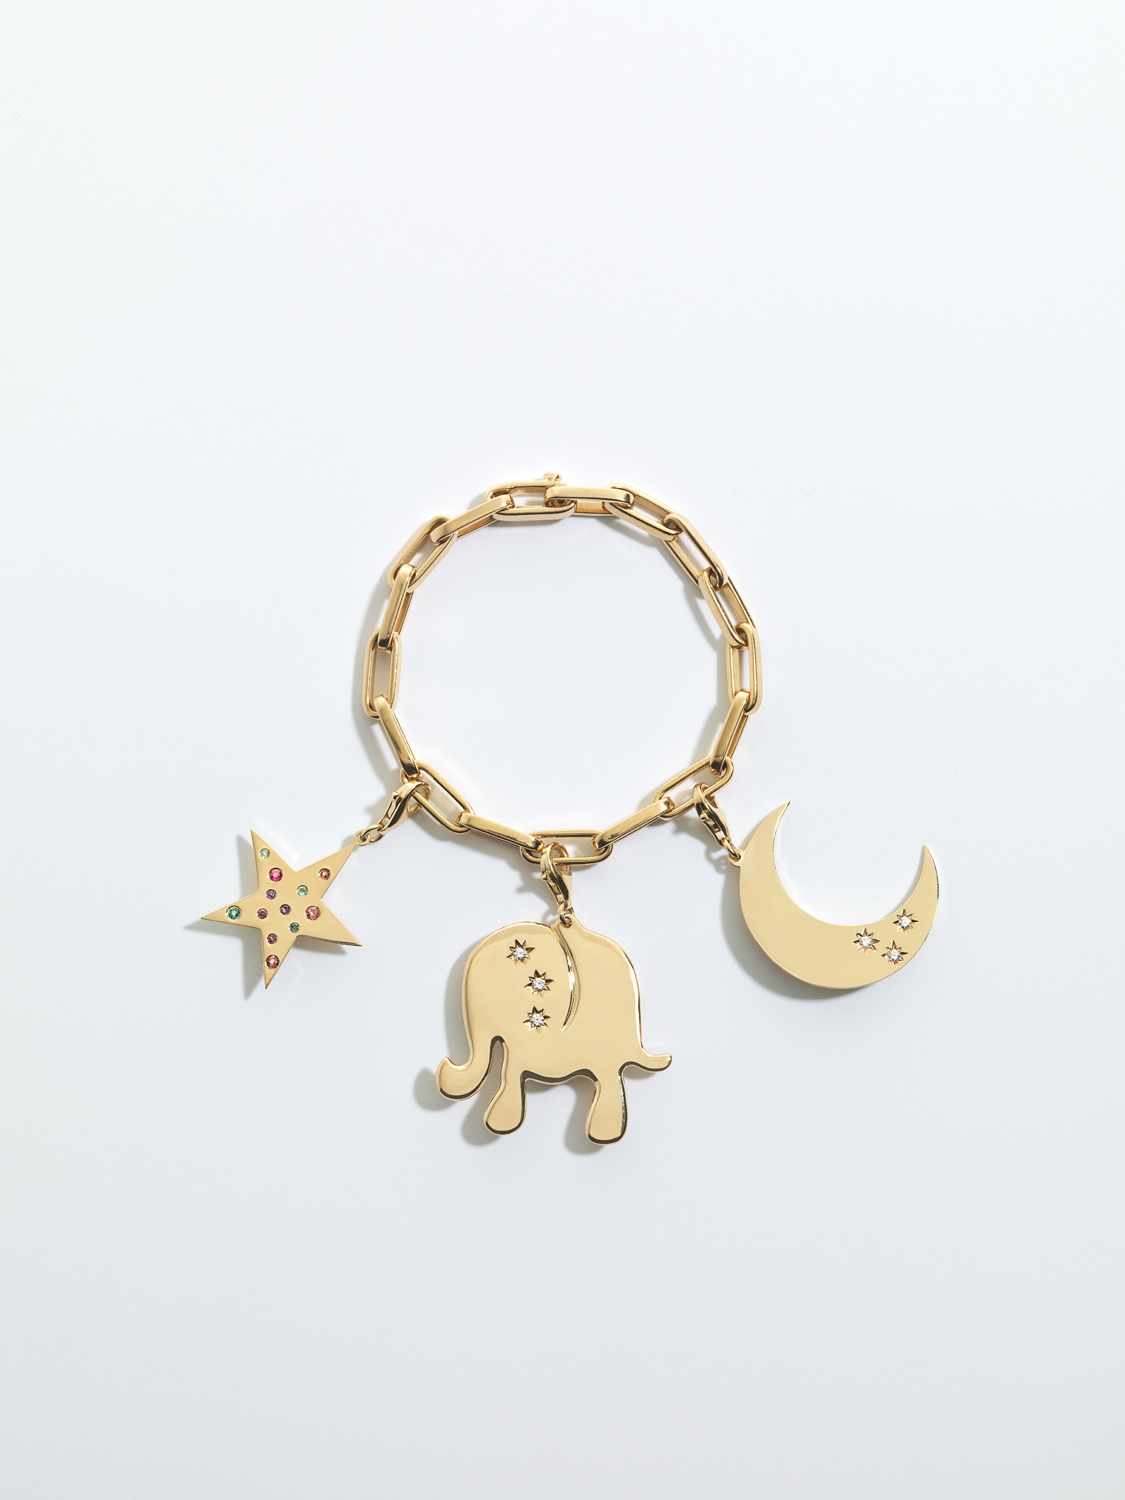 Hope and Happiness 14K 19 Inch Bracelet in Yellow gold 14K Elephant Set with 0.11ct of diamonds 14K Moon Set with 0.09ct of diamonds 14K Star Set with 0.33ct of pastel toned tourmalines